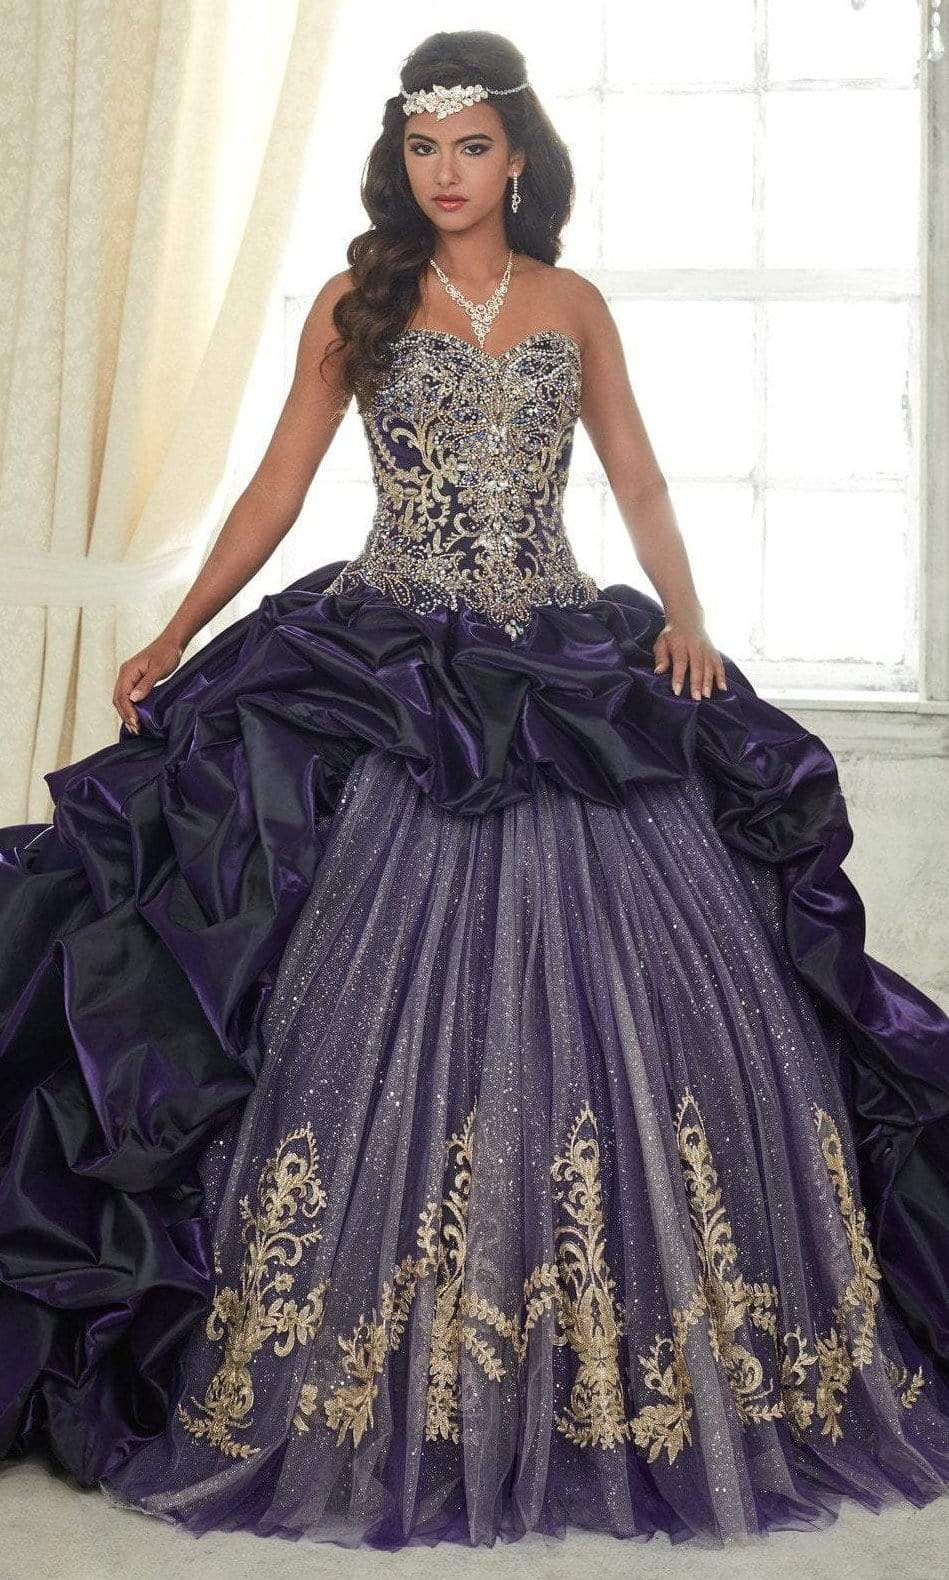 Quinceanera Collection - 26831 Metallic Embroided Sweetheart Ballgown from Quinceanera Collection